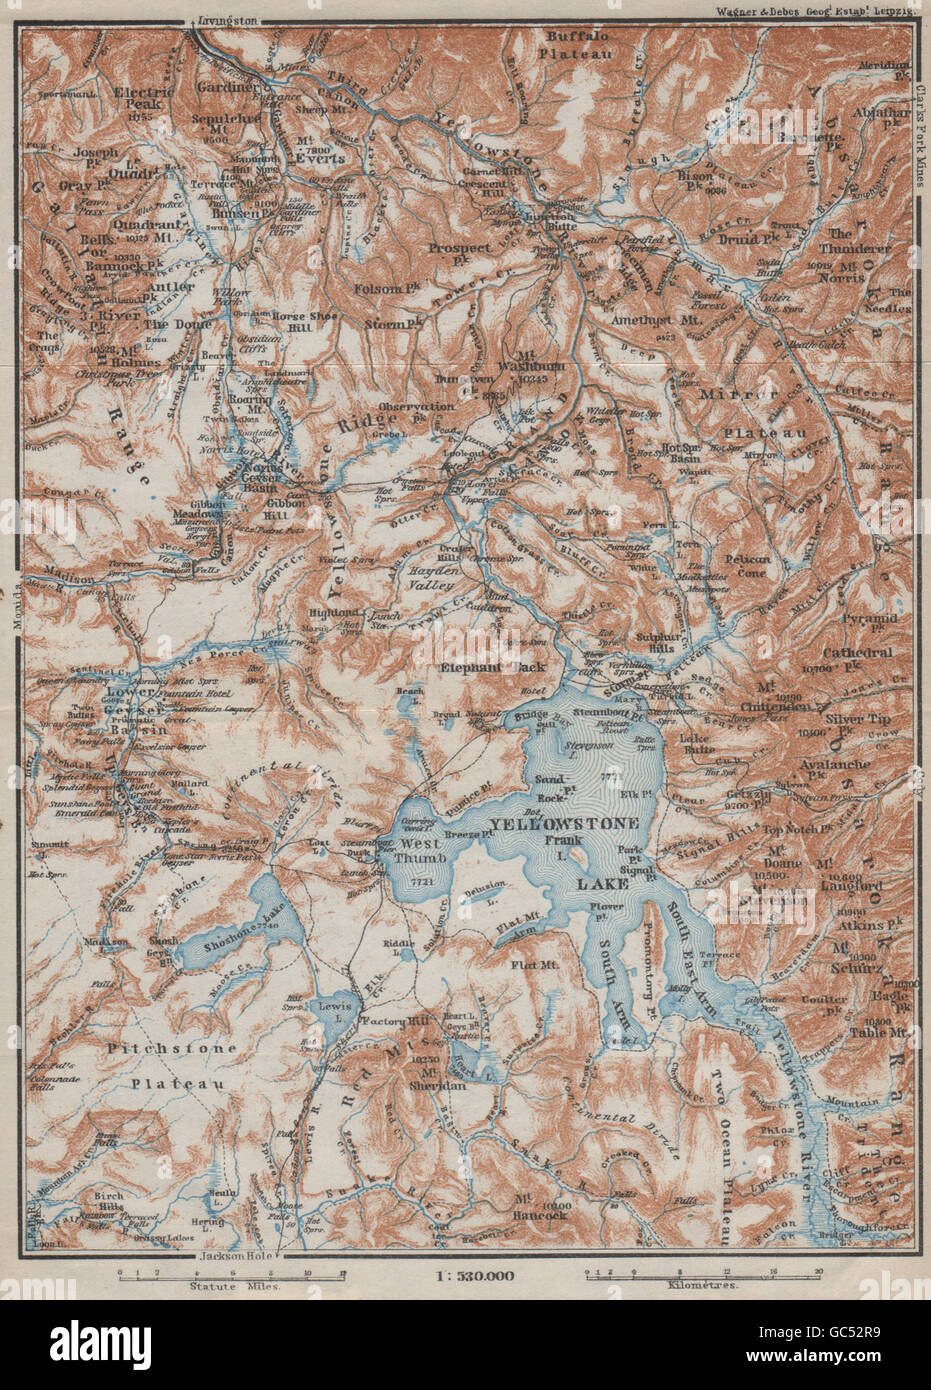 Topographic Map Of Yellowstone.Yellowstone National Park Topo Map Wyoming Baedeker 1909 Stock